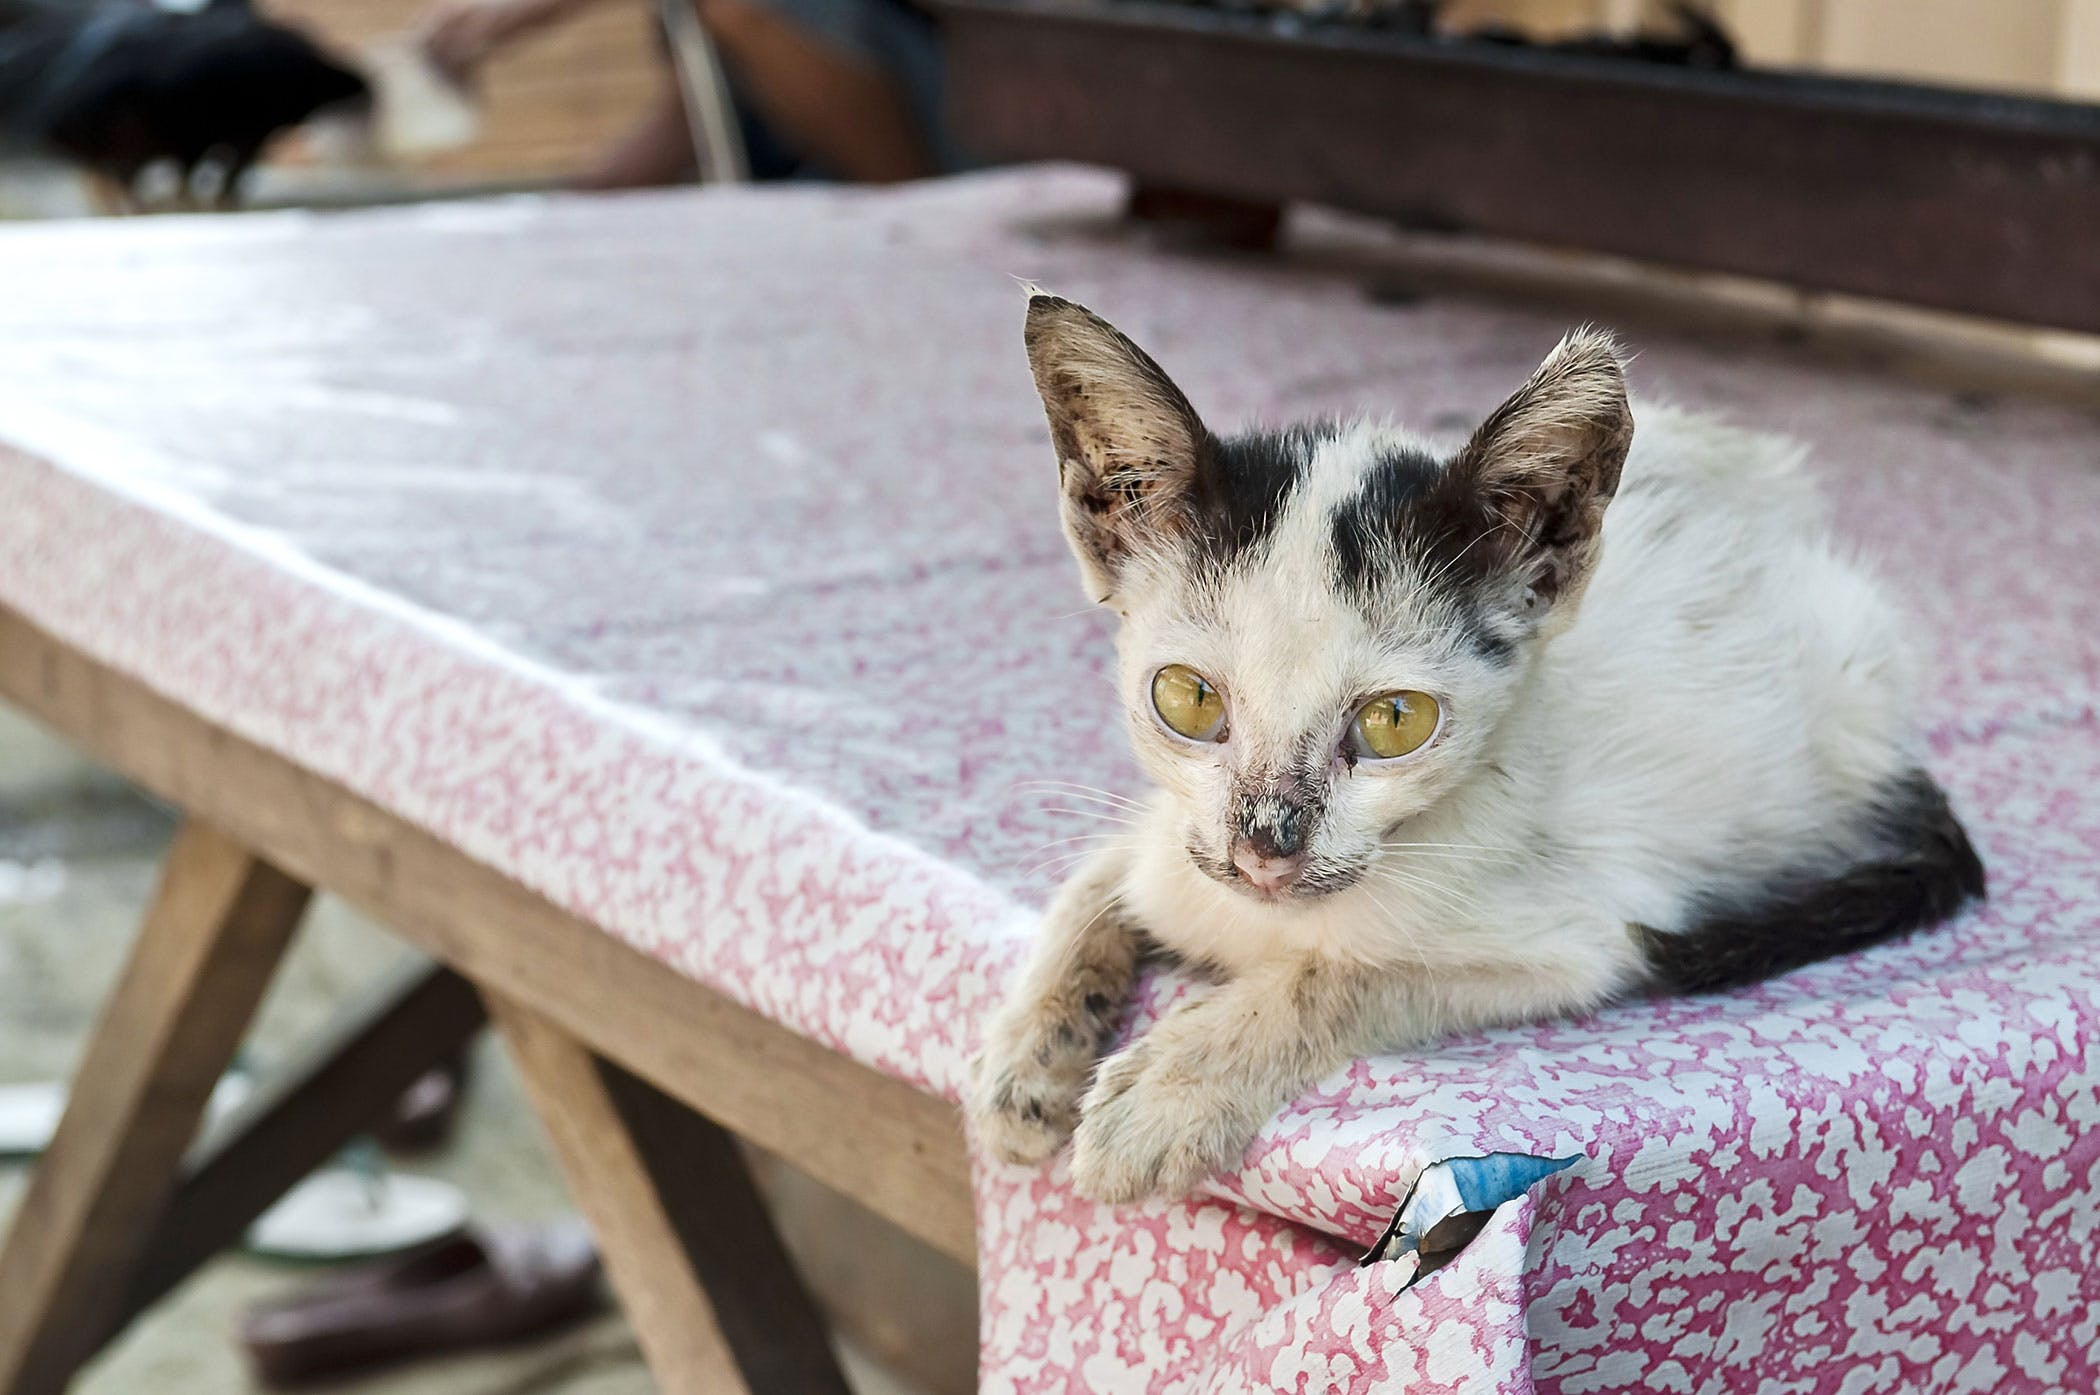 Bacterial Infection in Cats - Symptoms, Causes, Diagnosis